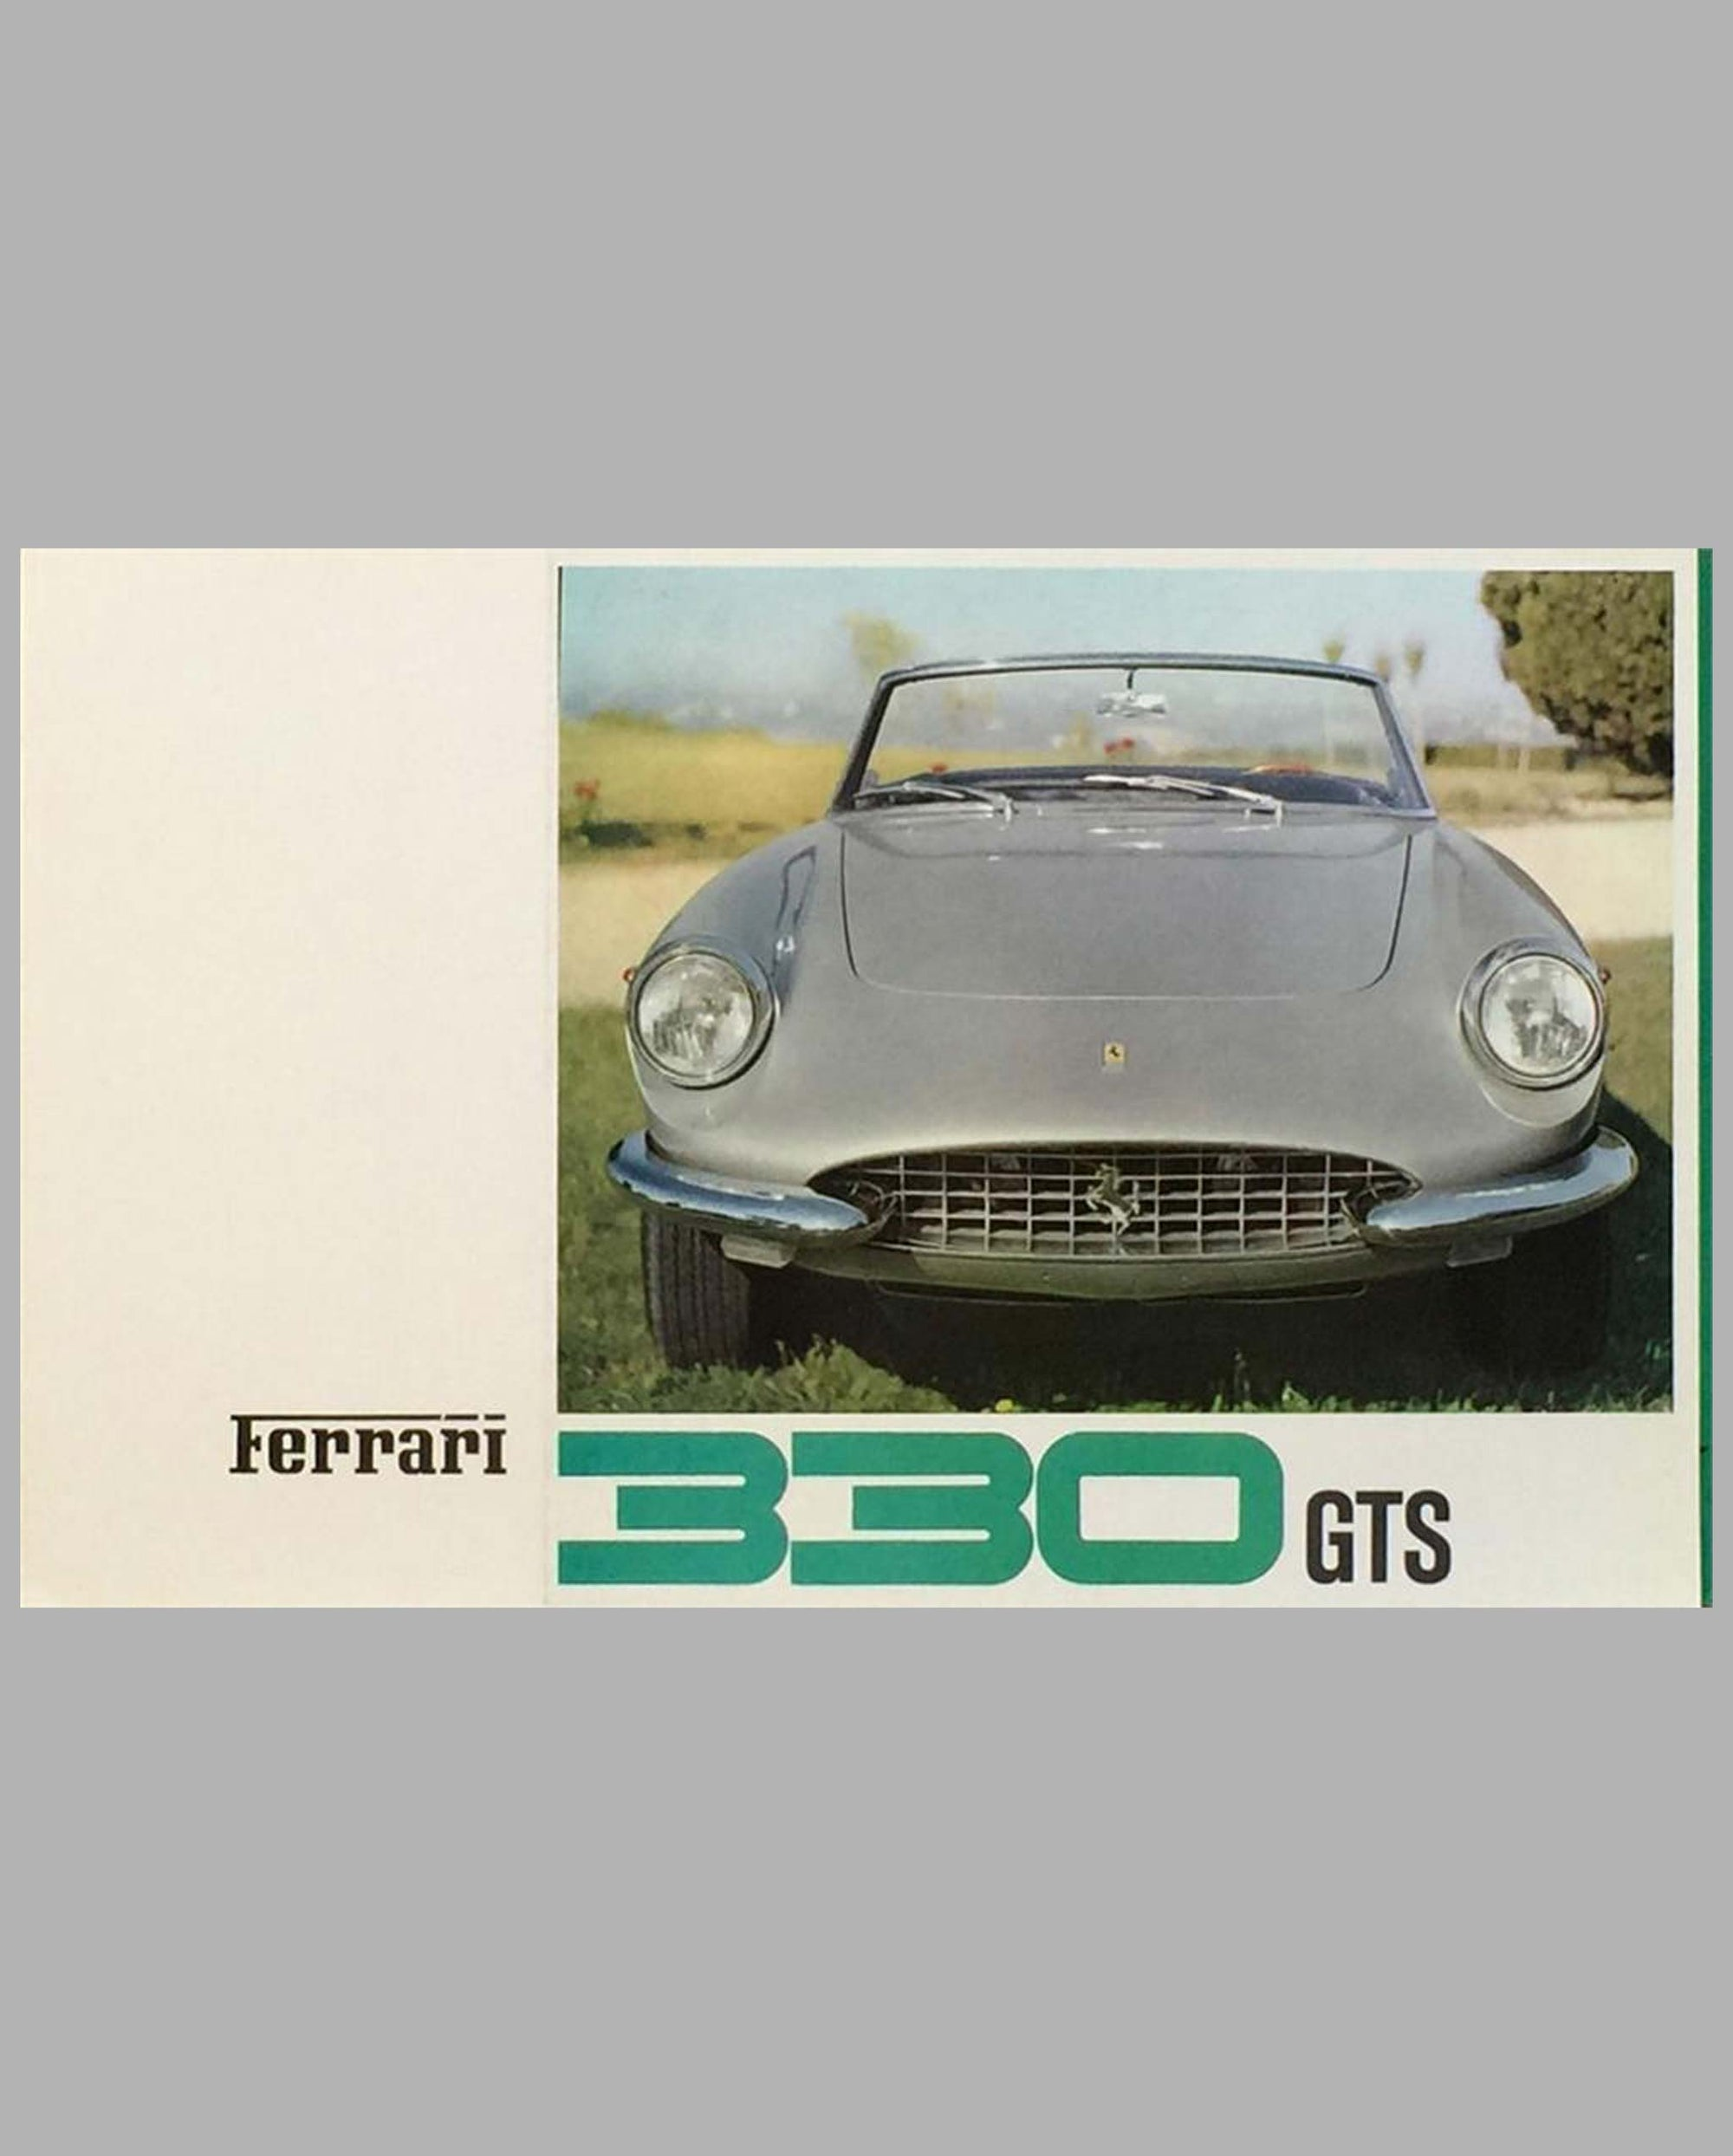 Ferrari 330 GTS original factory sales brochure